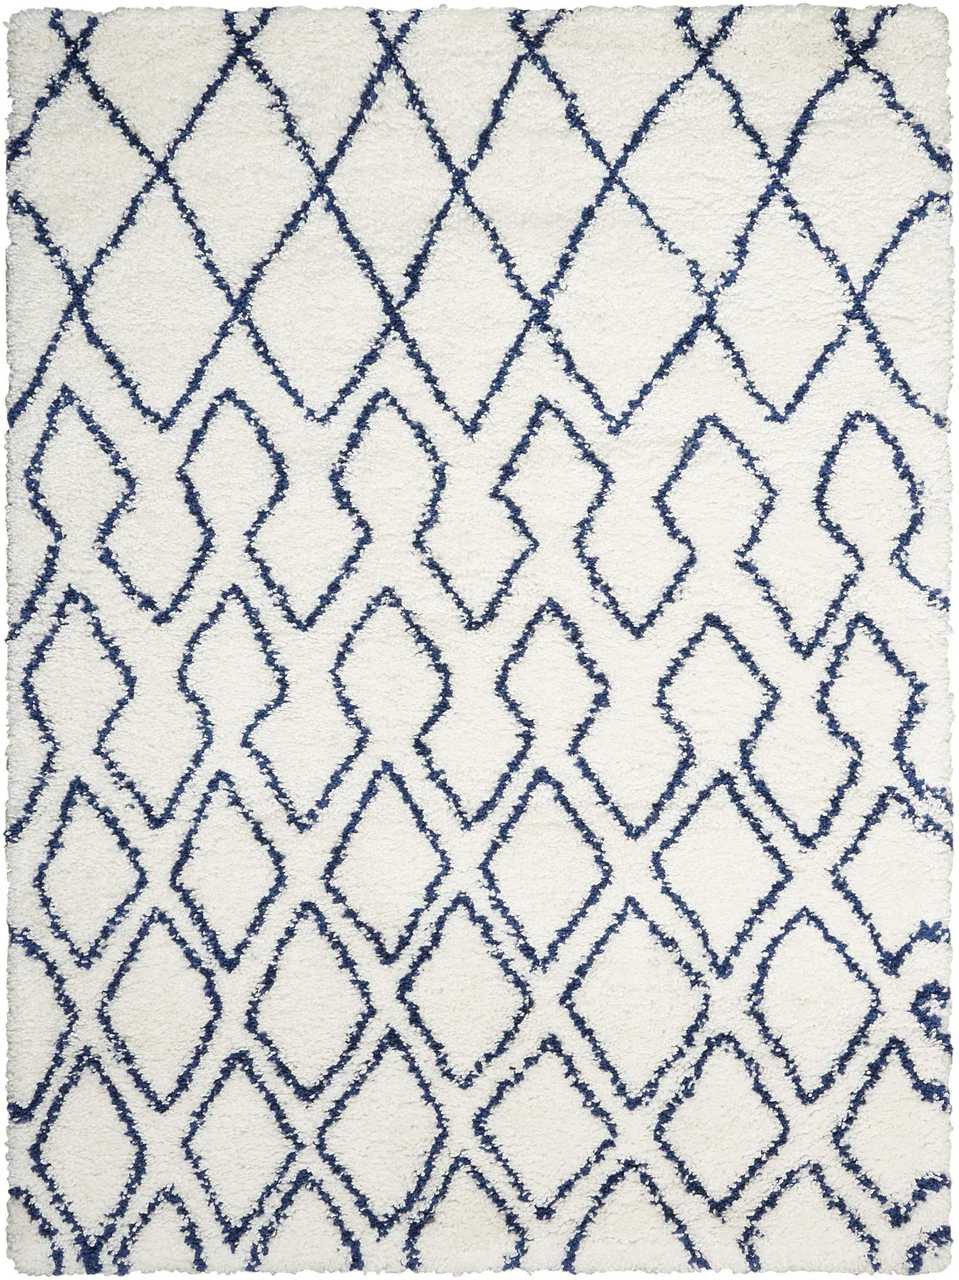 Picture of: Calvin Klein Riad Ivory Navy Shag Area Rug By Nourison Free Shipping Rug Fashion Store